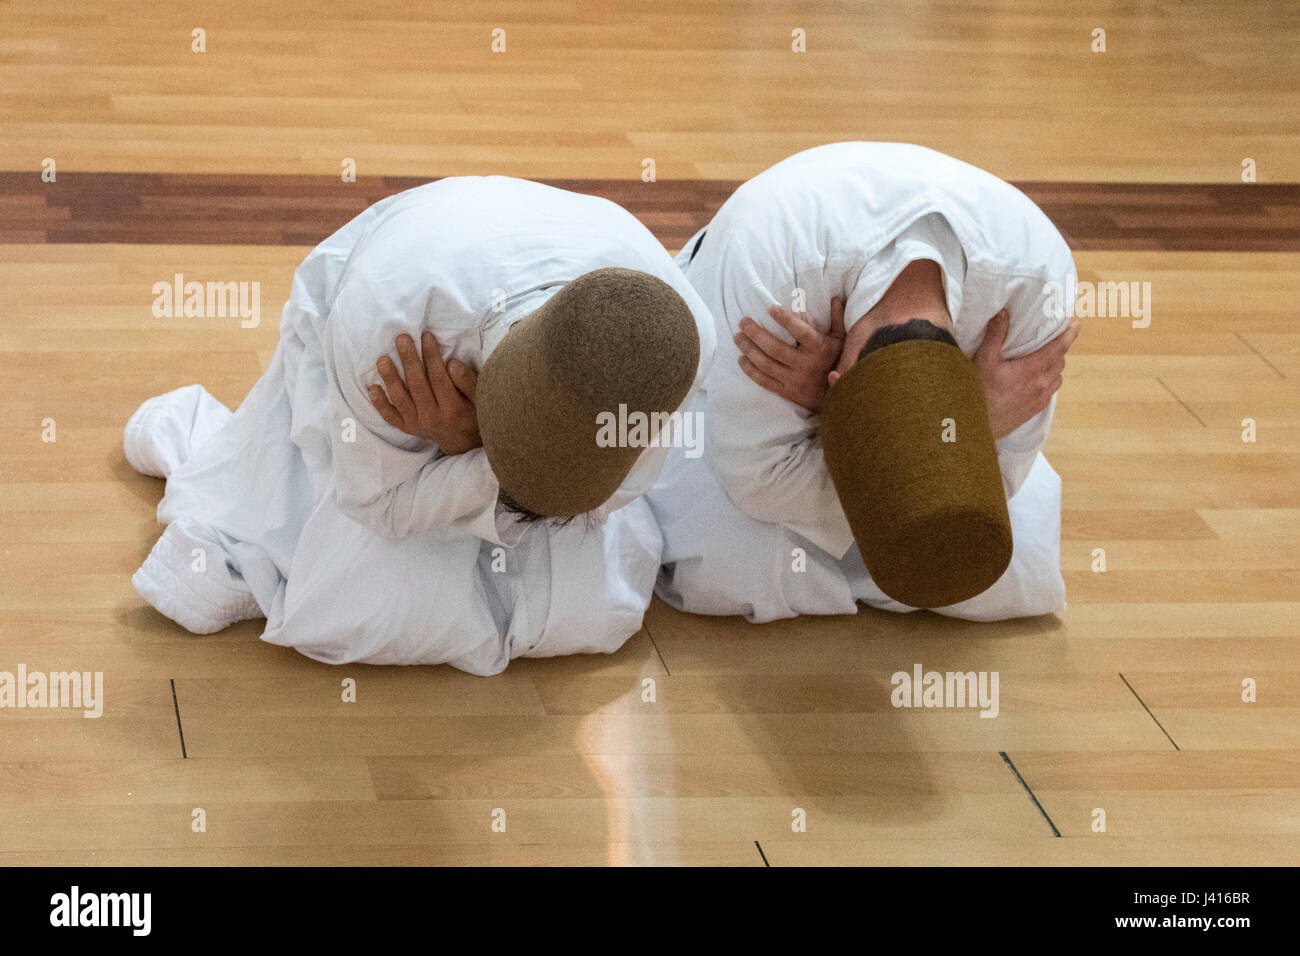 Dervishes bowing at Yaqup Baba of Fatih, Istanbul, TURKEY -  18/12/2016. In Istanbul's neighbourhood of Fatih, Yakup - Stock Image